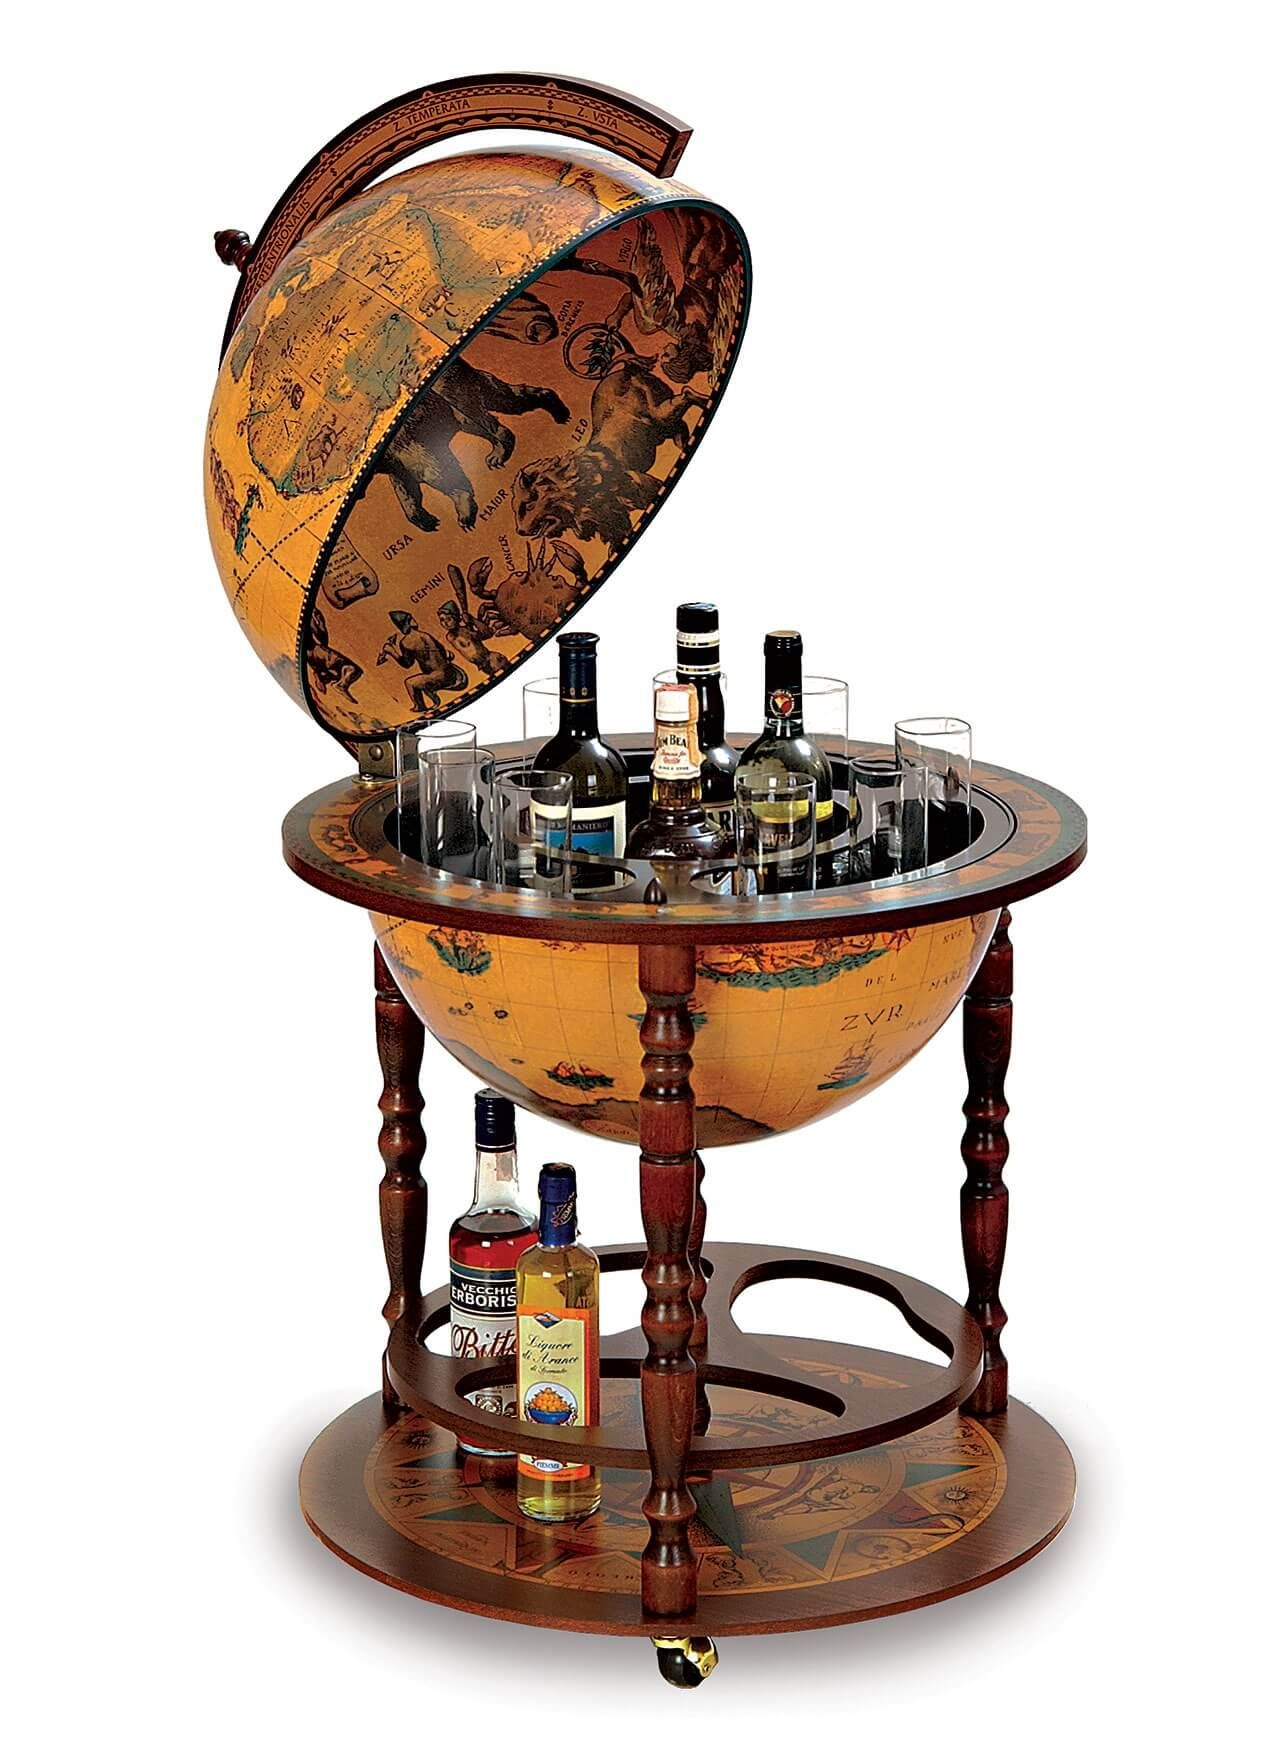 Morientez Globe BarThe Morientez Globe Bar is a budget globe drinks cabinet  that can store up to 4 bottles and 12 glasses in its Century replica antique  ... - Morientez *Genuine Italian* Bar Globe Lounge/Dinning Room